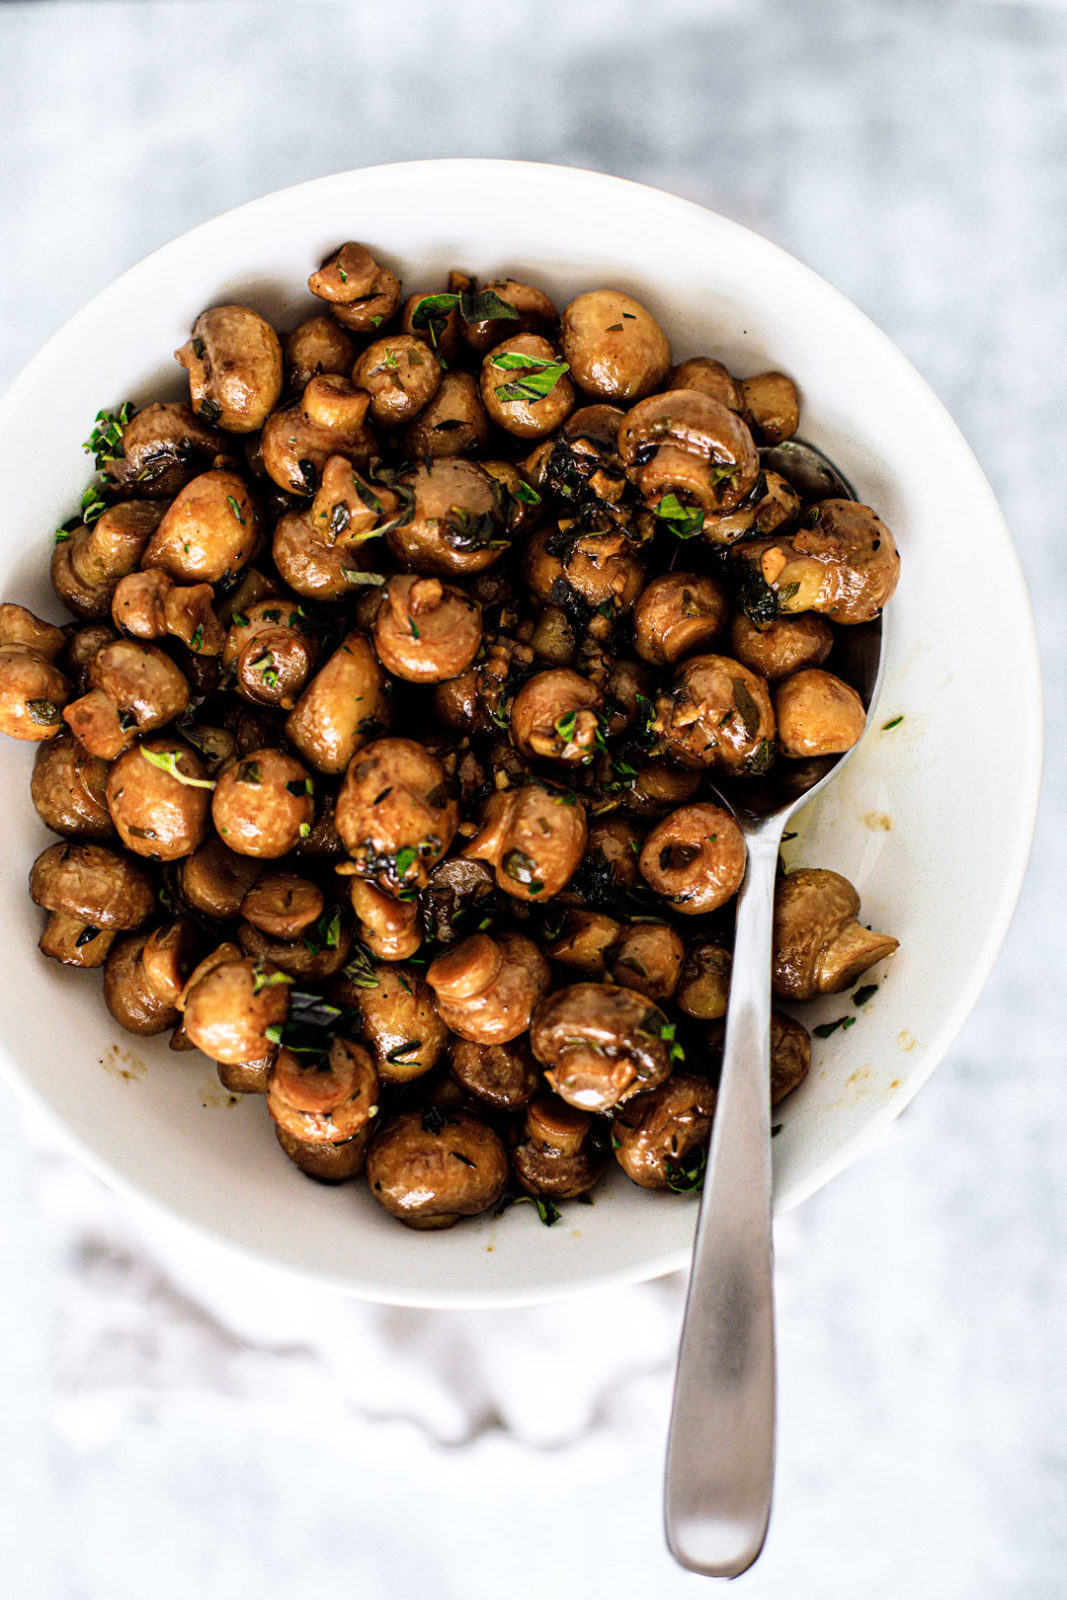 Serving bowl full of beer butter mushrooms garnished with fresh herbs.